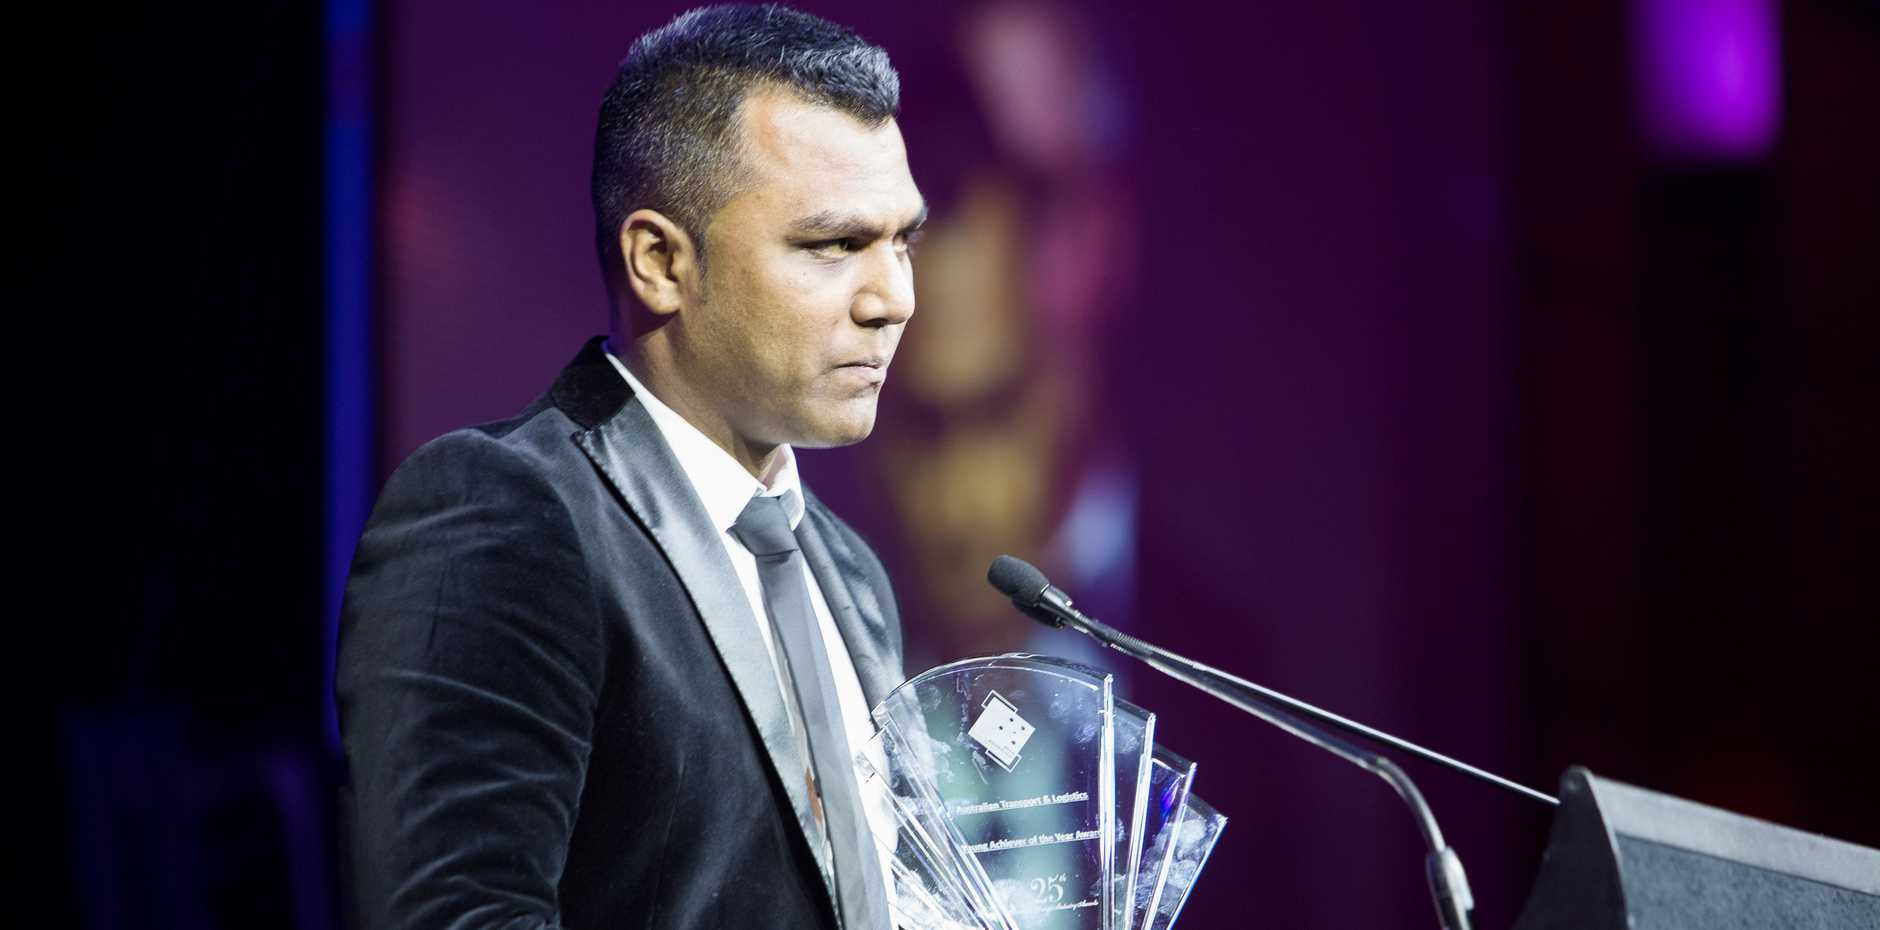 Fred Mohammed Managing Director of Cranes R Us was recognised as the 2014 Australian Transport & Logistics Young Achiever at the 25th annual Australian Freight Industry Awards on September 6.